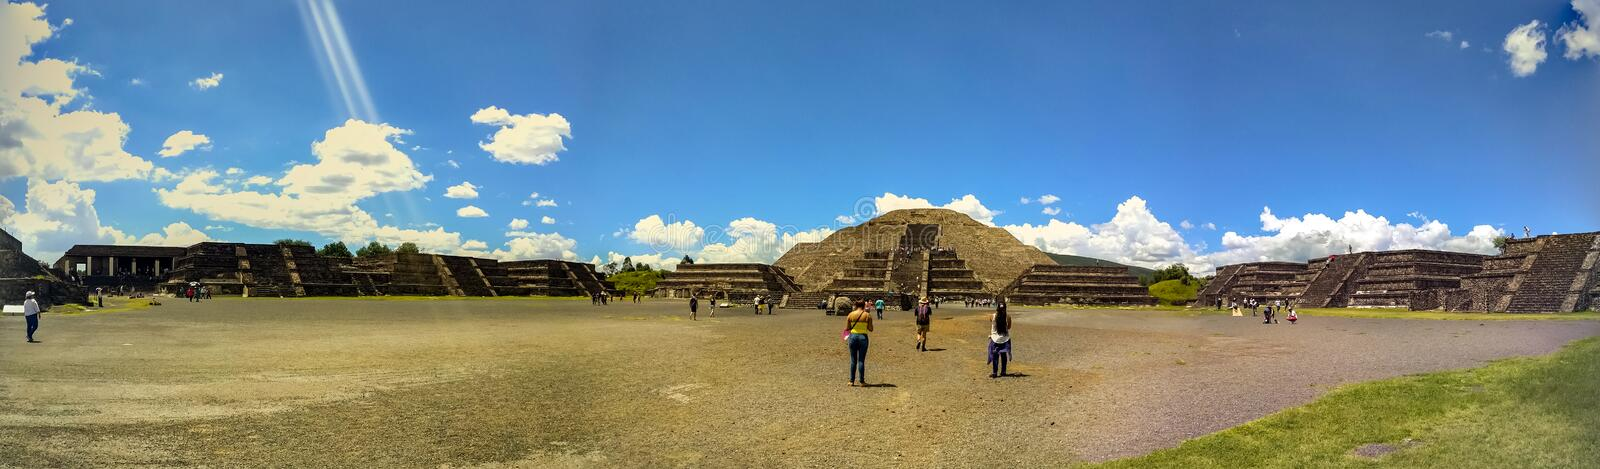 Moon Pyramid at Teotihuacan, Mexico. Panorama. royalty free stock photo